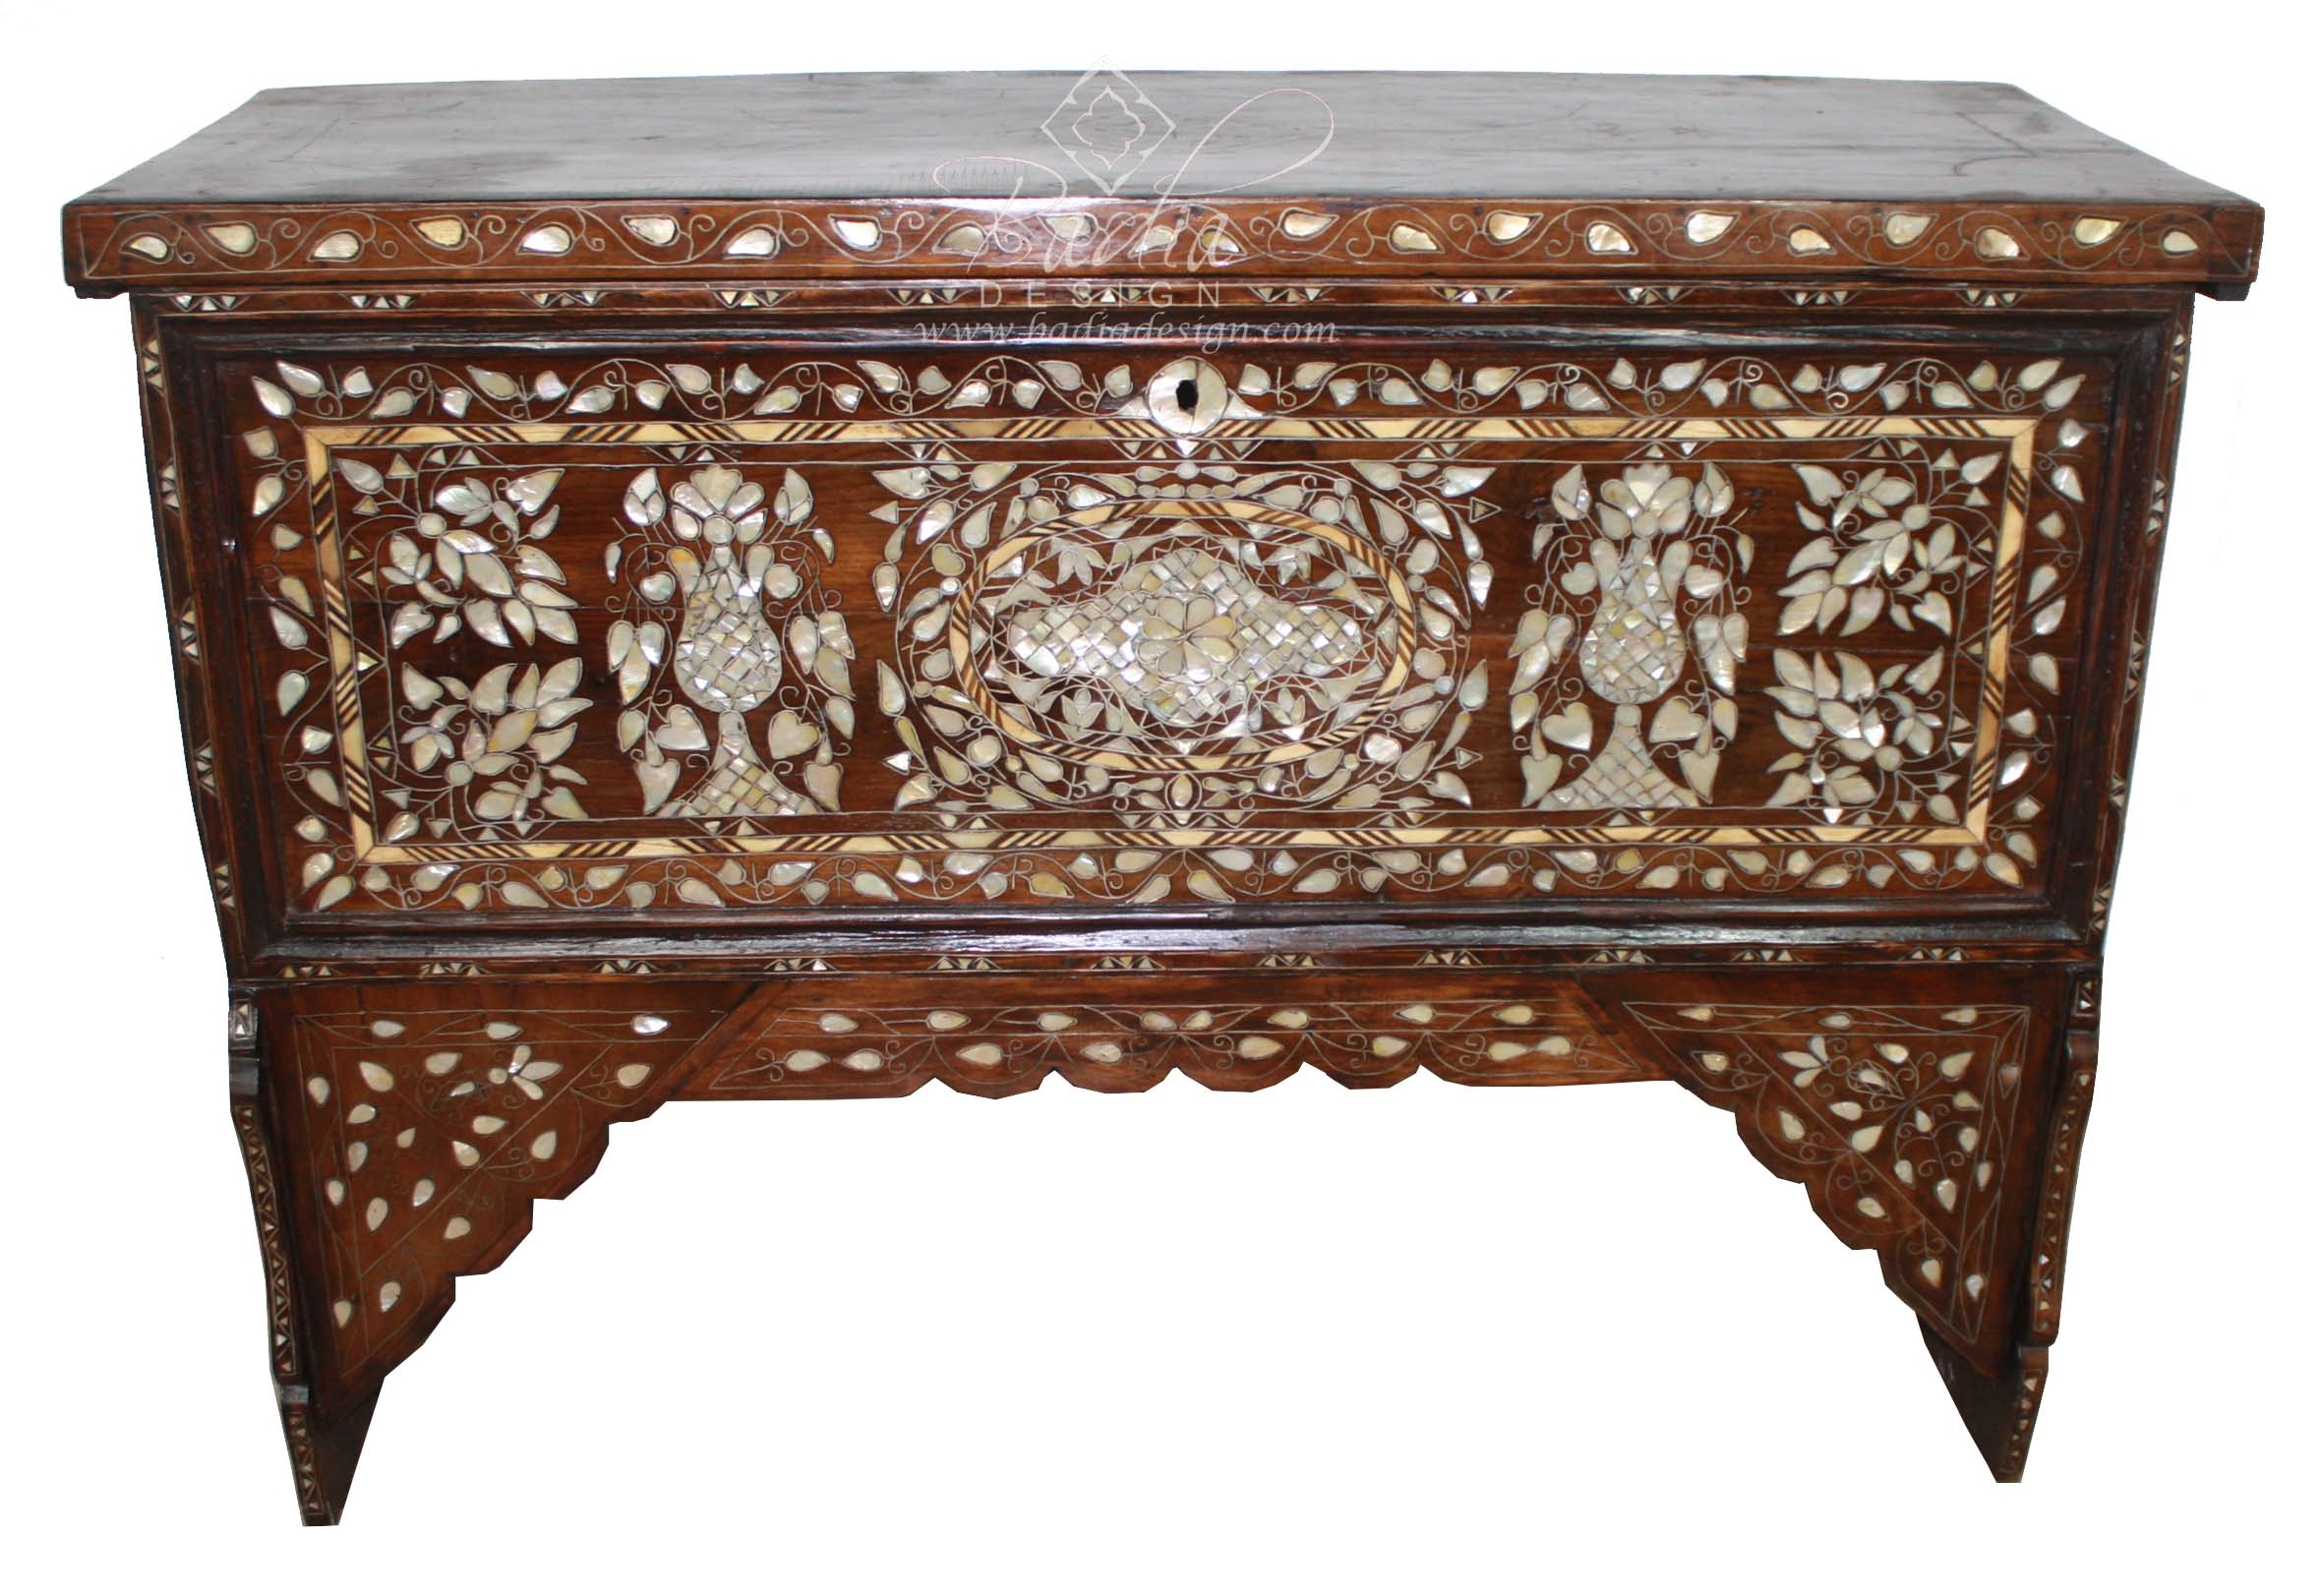 is-buying-furniture-online-safe-chest-mop-t017-1.jpg